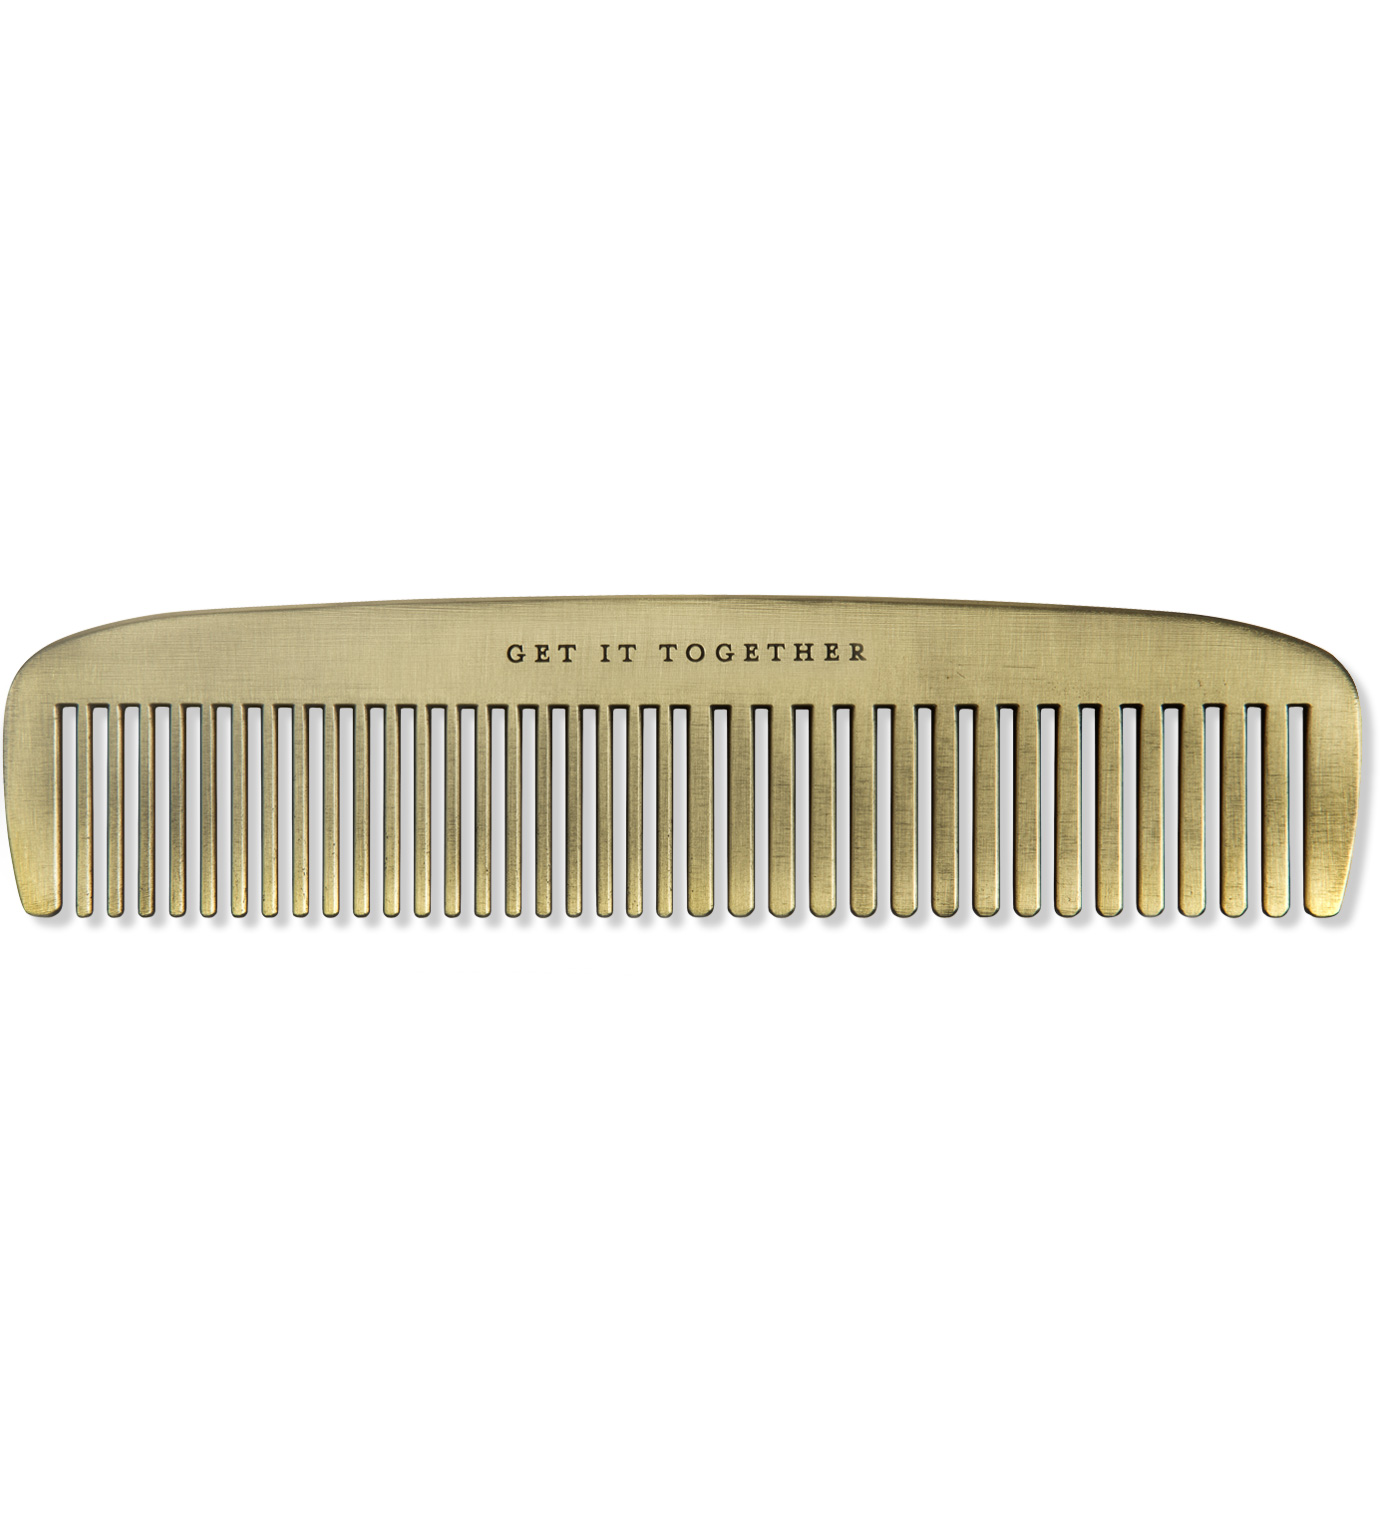 IZOLA Get It Together Brass Comb